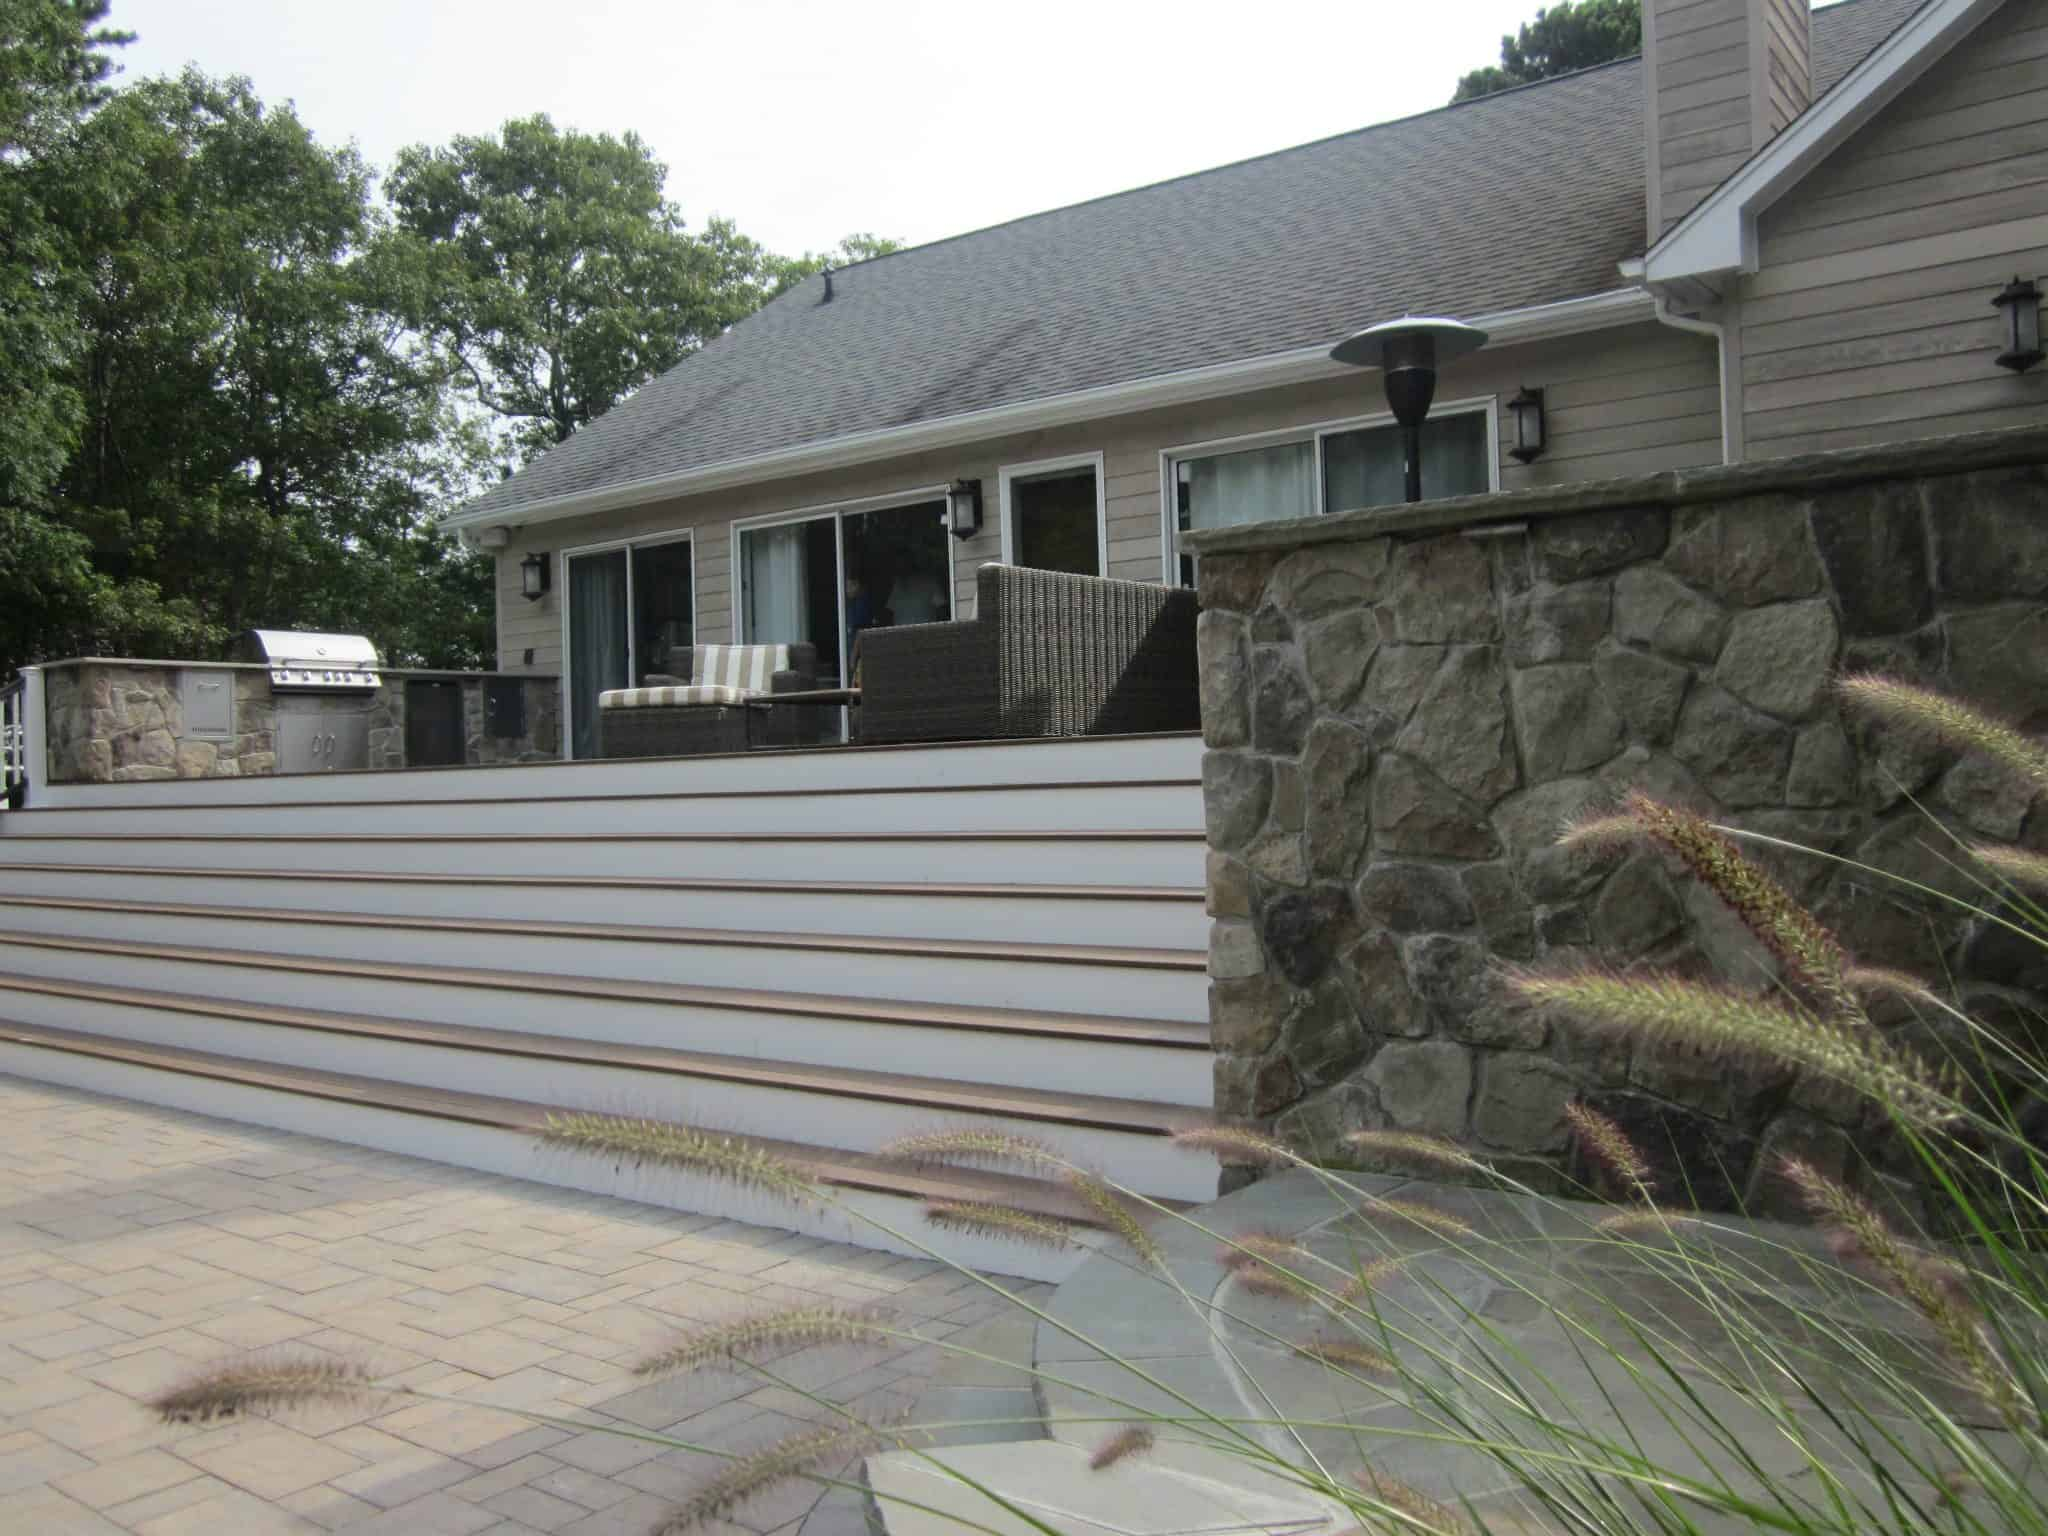 Built in Spa and Outdoor Kitchen veneered in Dressed Field Stone - Bucks County - Hampton Bays, Long Island NY